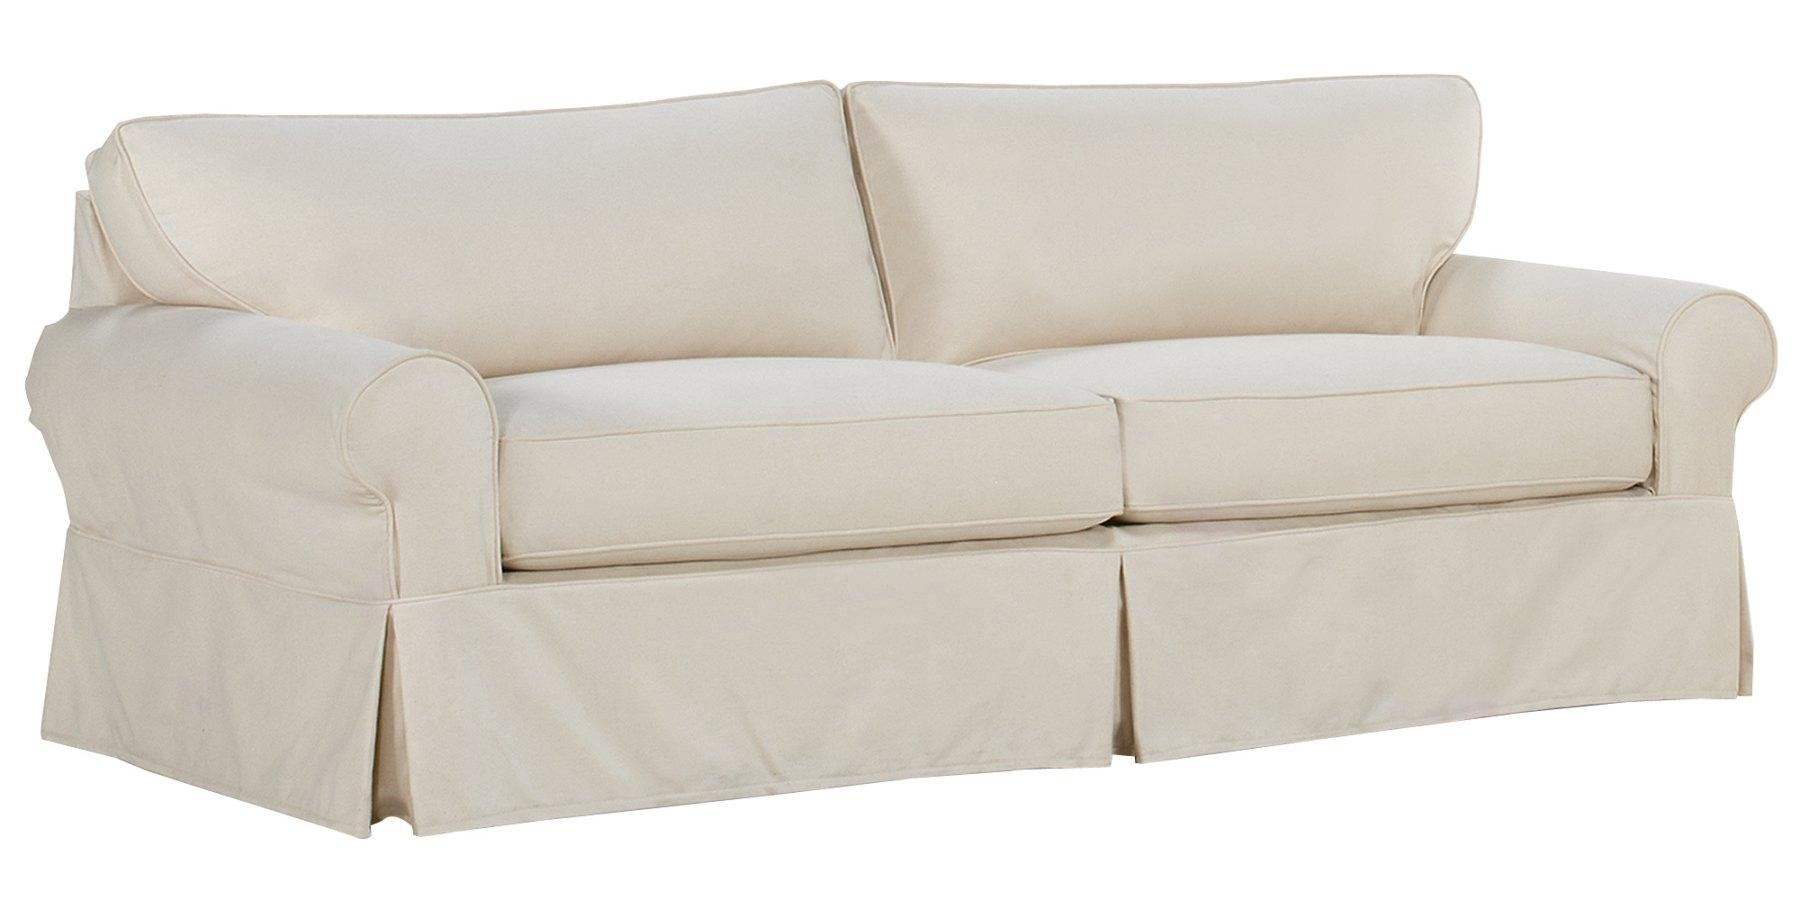 Slipcovers For Sleeper Sofas – Ansugallery Within Slipcovers For Sleeper Sofas (Image 16 of 20)